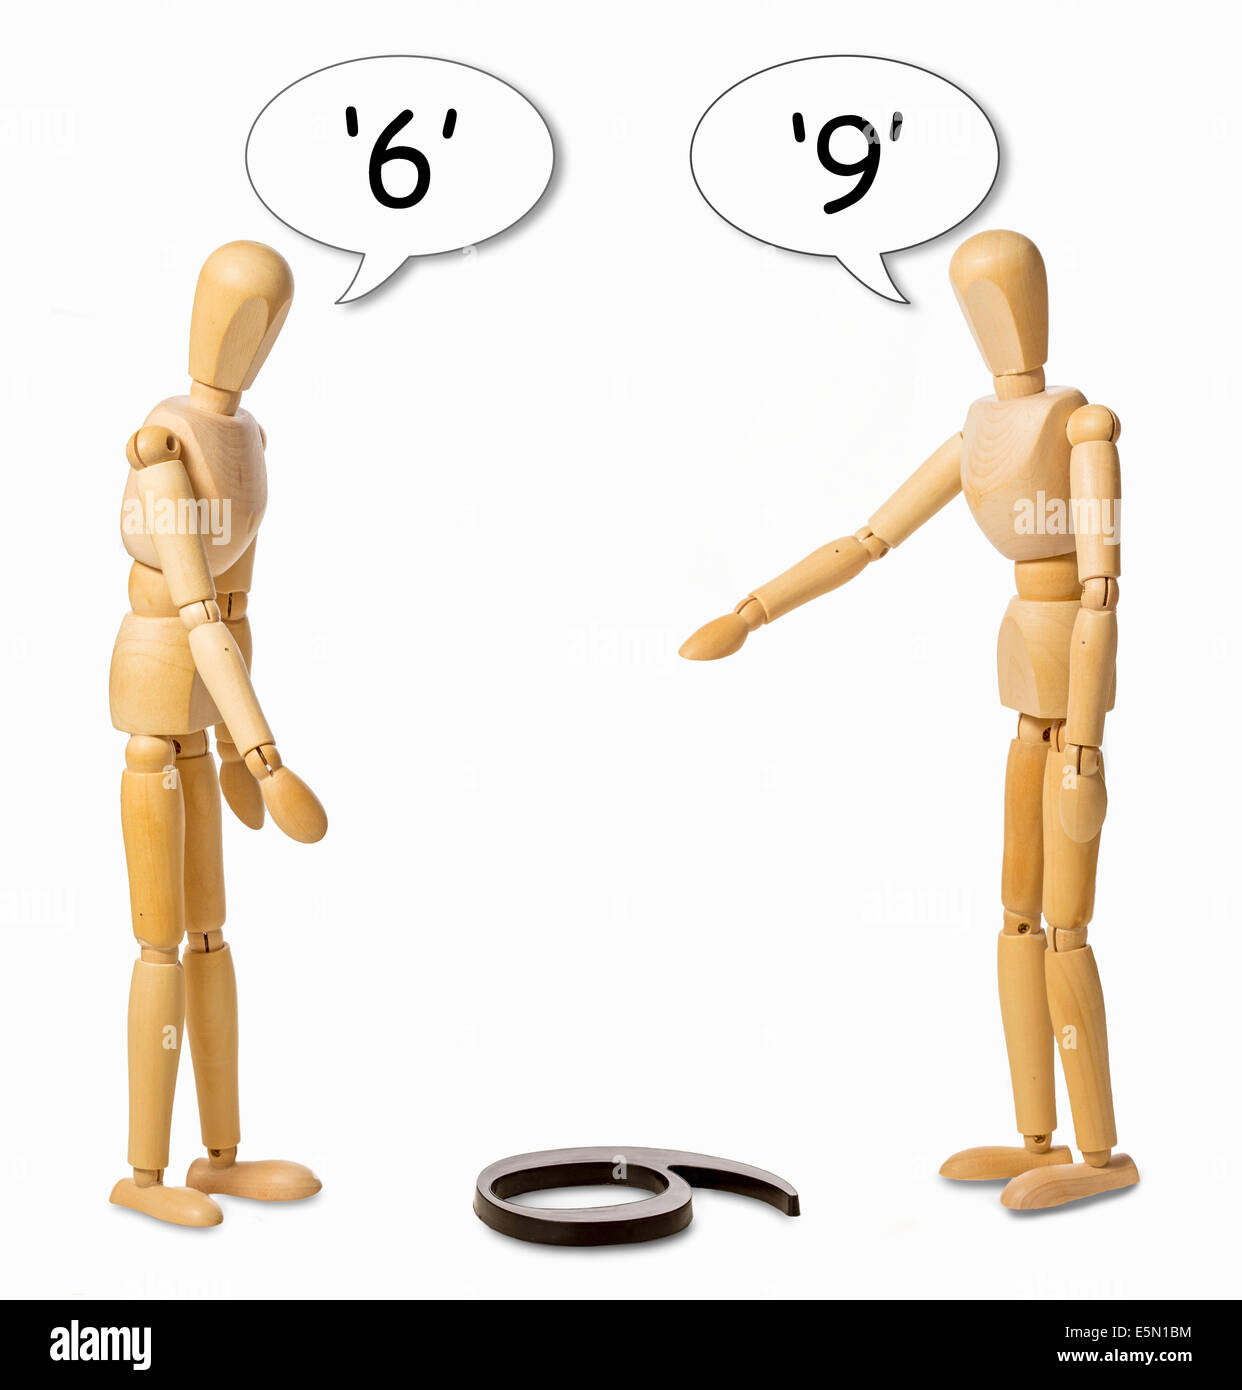 two mannikins arguing whether a number on the floor is a 6 or a 9 - Stock Image